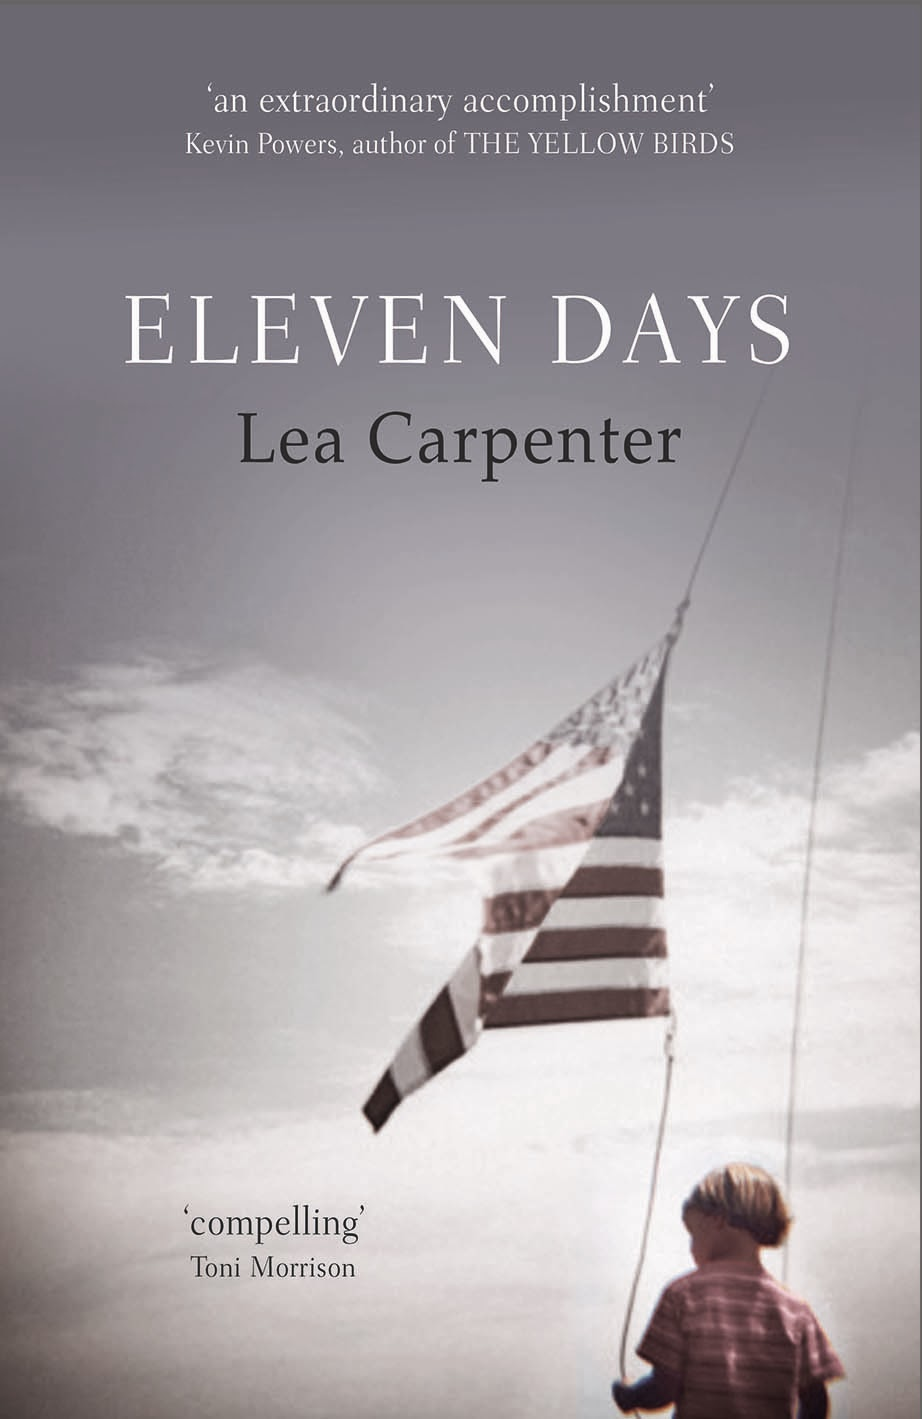 http://discover.halifaxpubliclibraries.ca/?q=title:%22eleven%20days%22carpenter